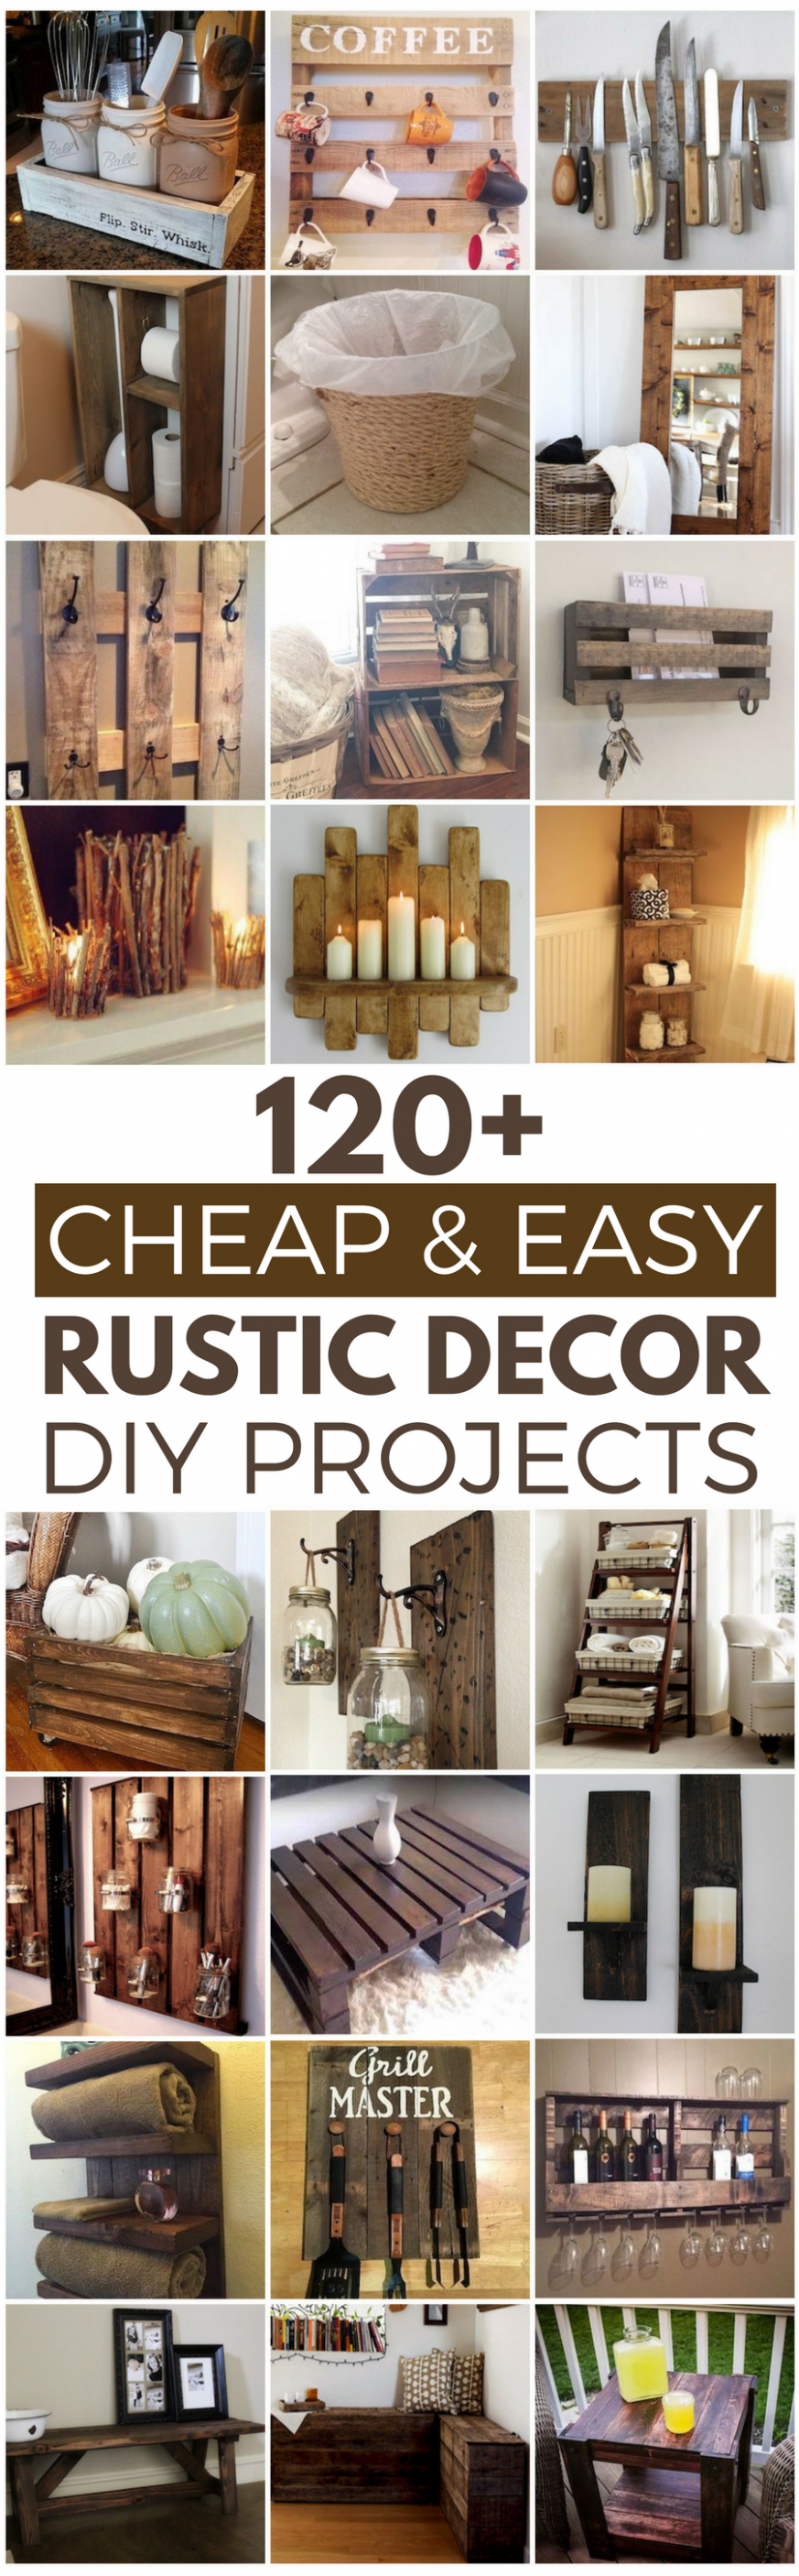 10 Cheap and Easy Rustic DIY Home Decor | Diy decor projects, Diy ...